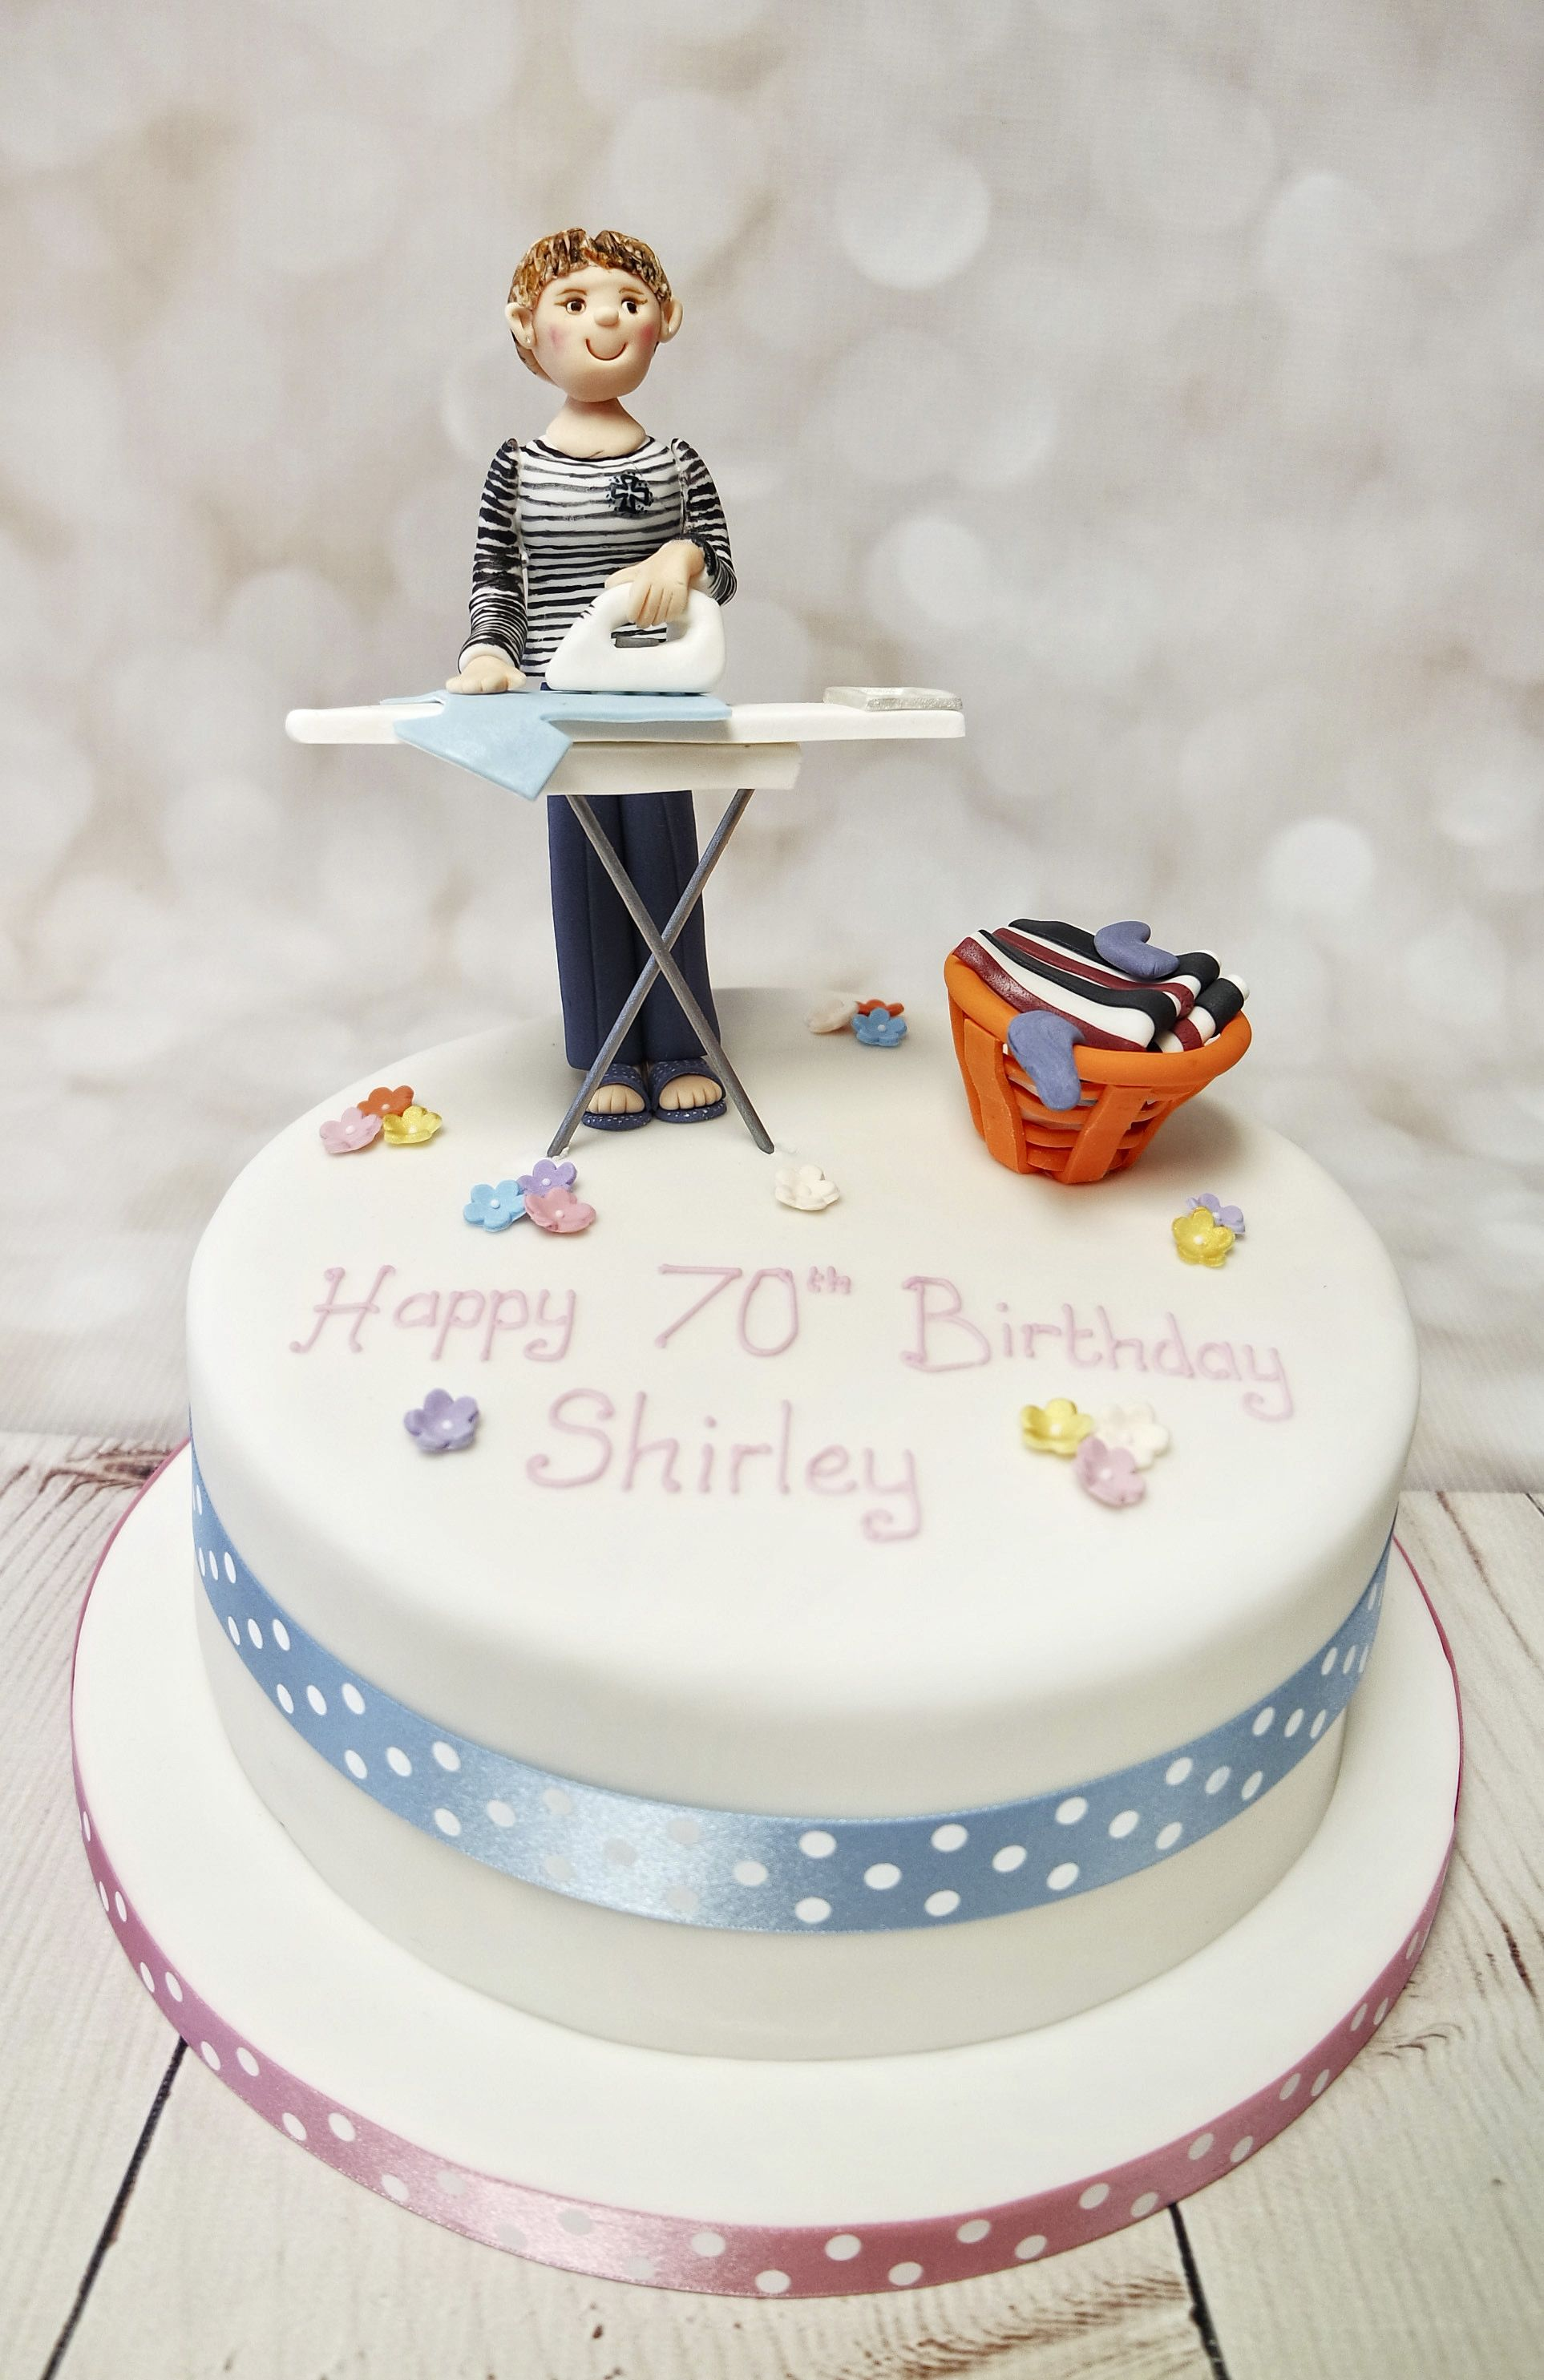 Fantastic Bespoke Model And Cake For A Special Birthday Modelcake